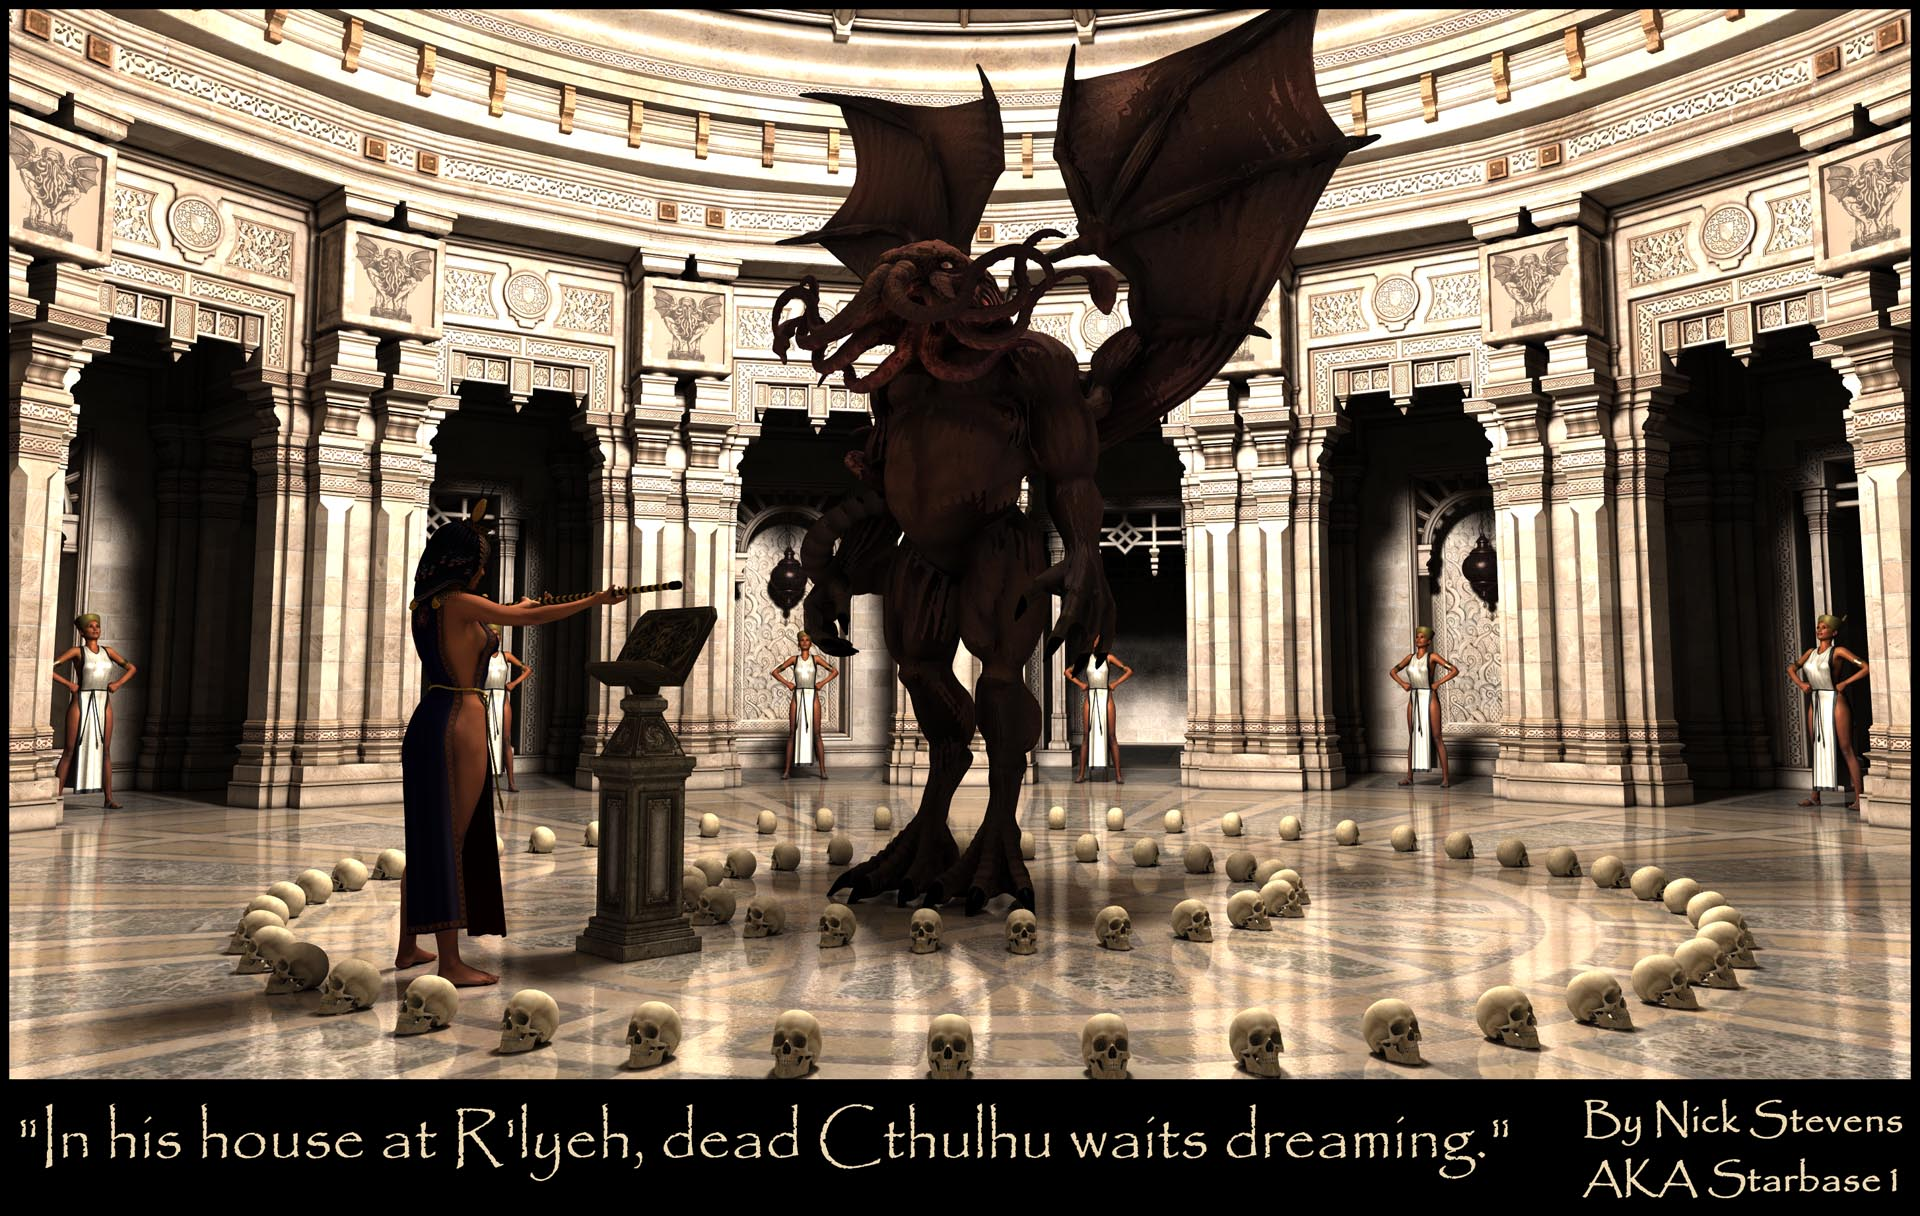 In his house at Rlyeh dead Cthulhu waits dreaming